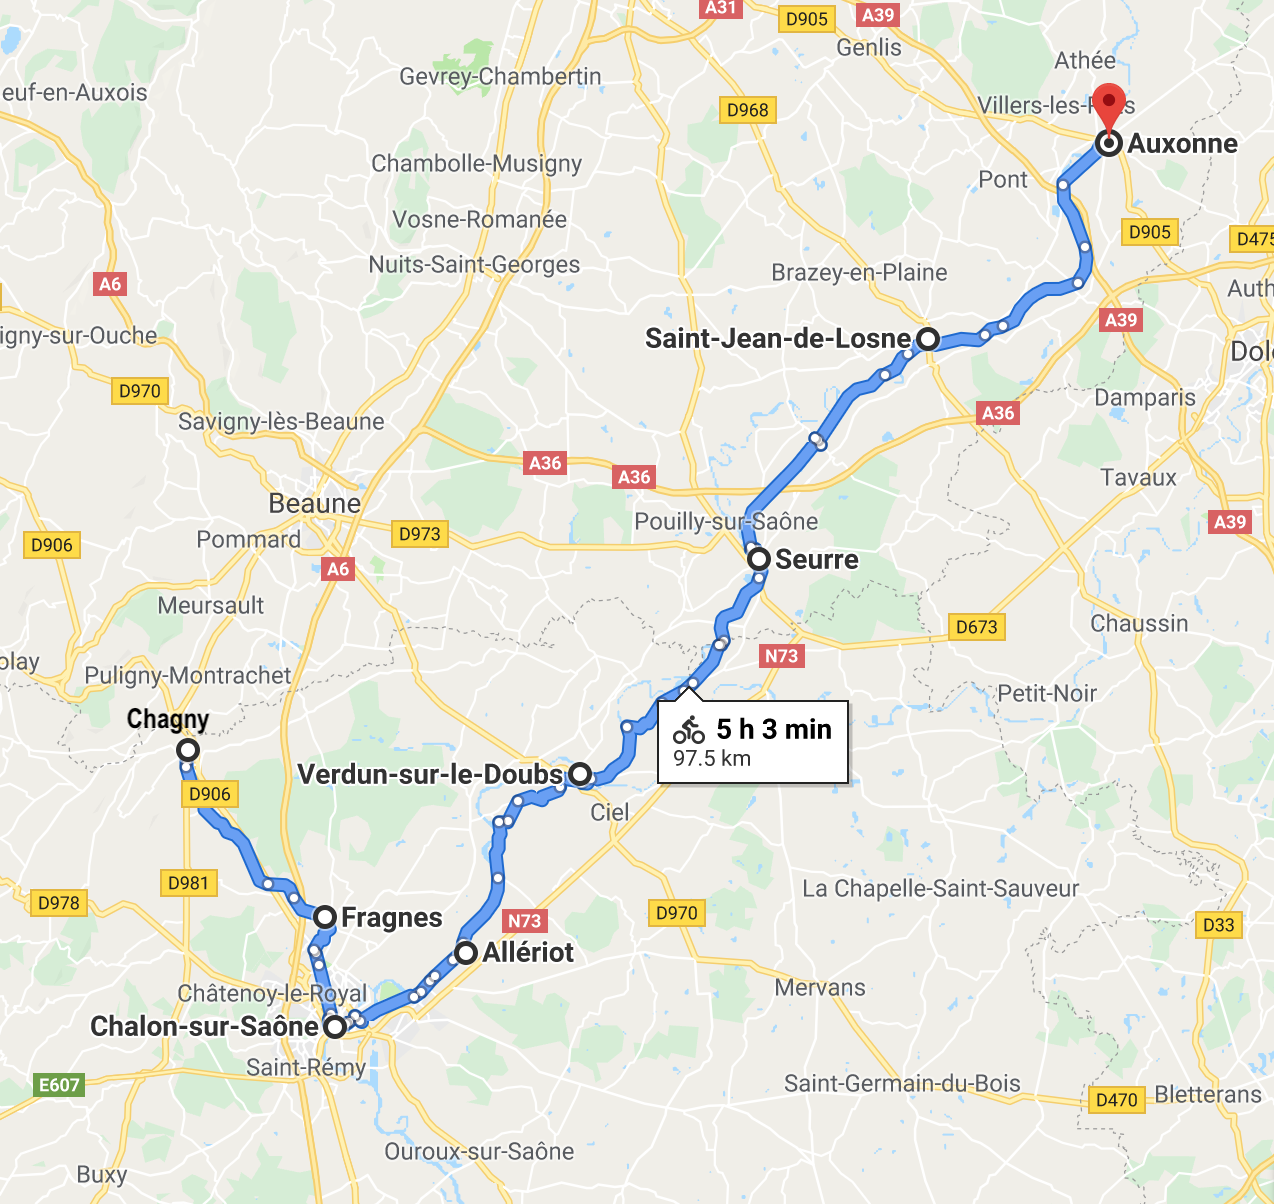 Chagny to Auxonne map